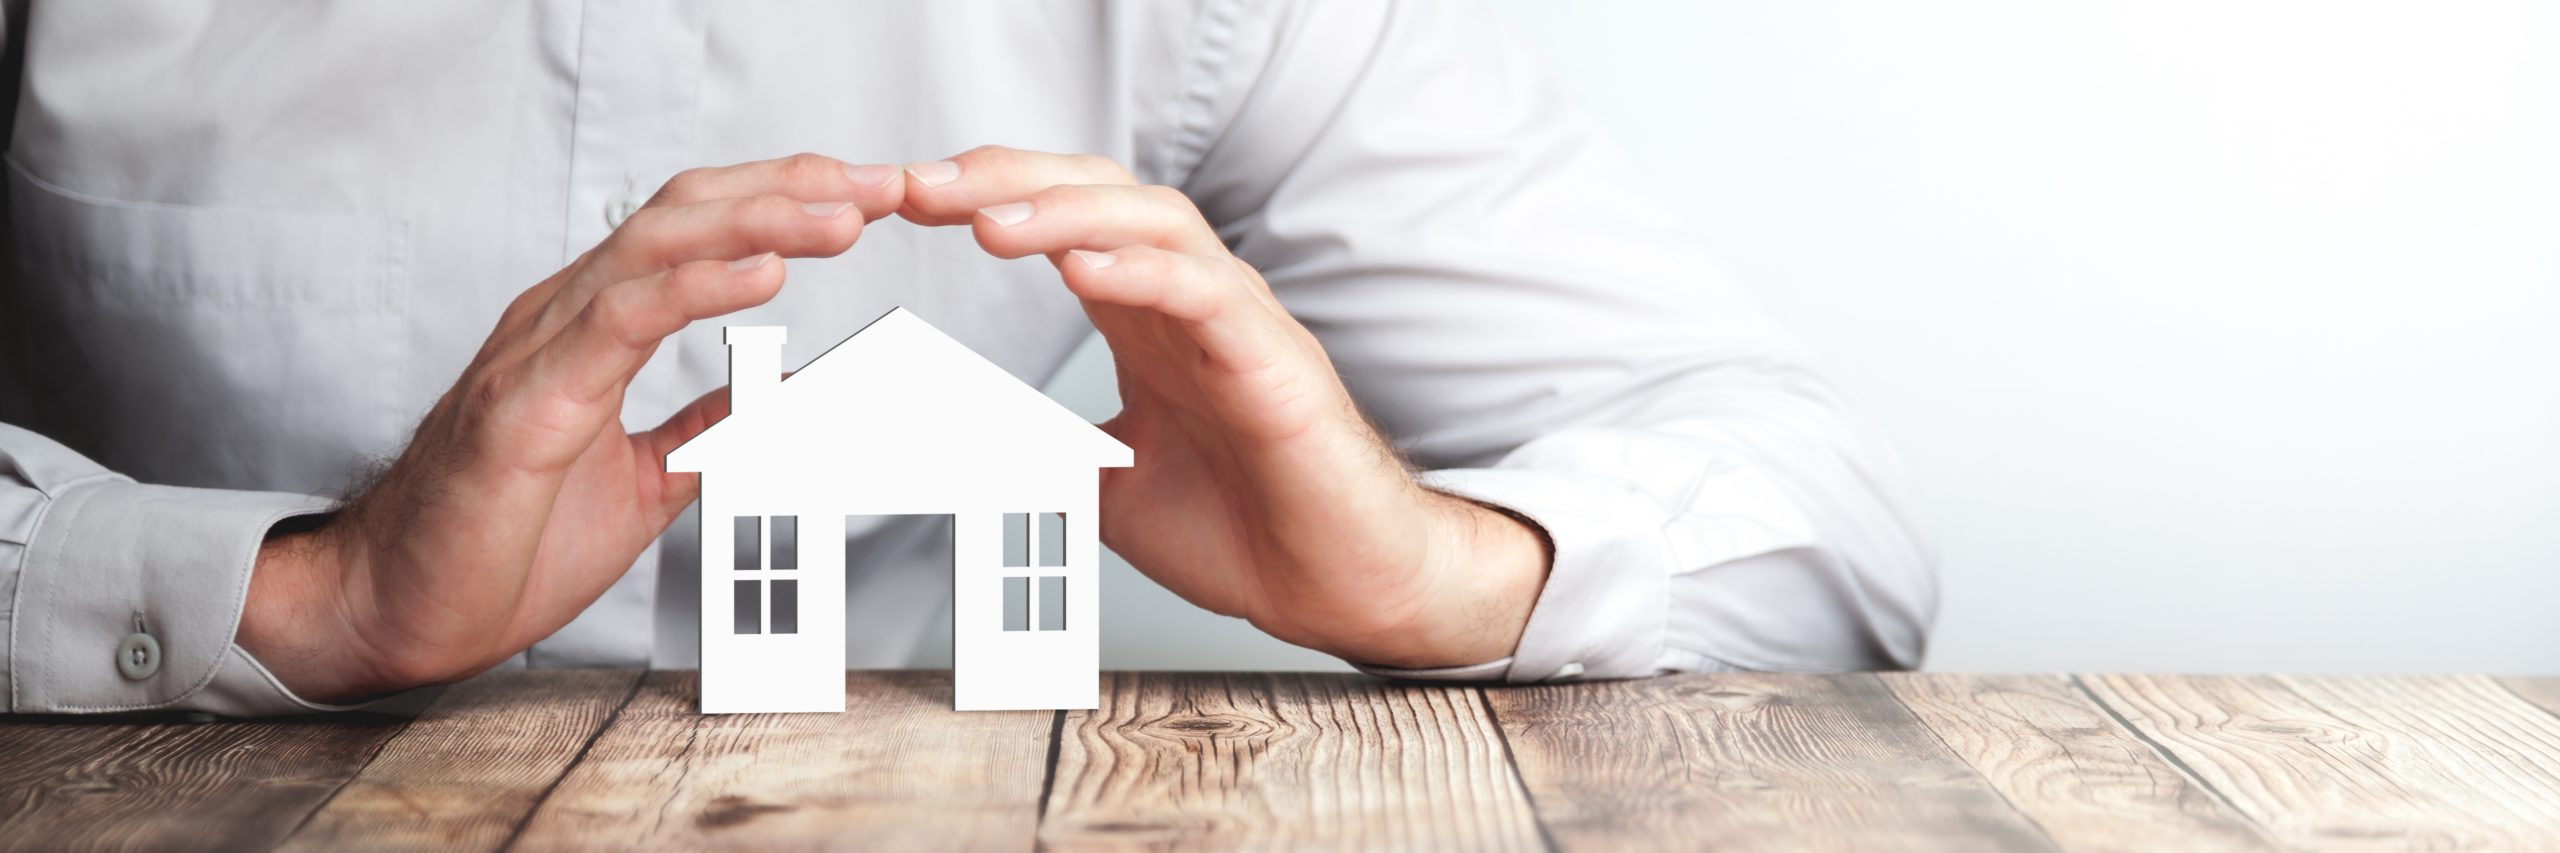 Protecting Hands Over House - Home Security And Protection Concept